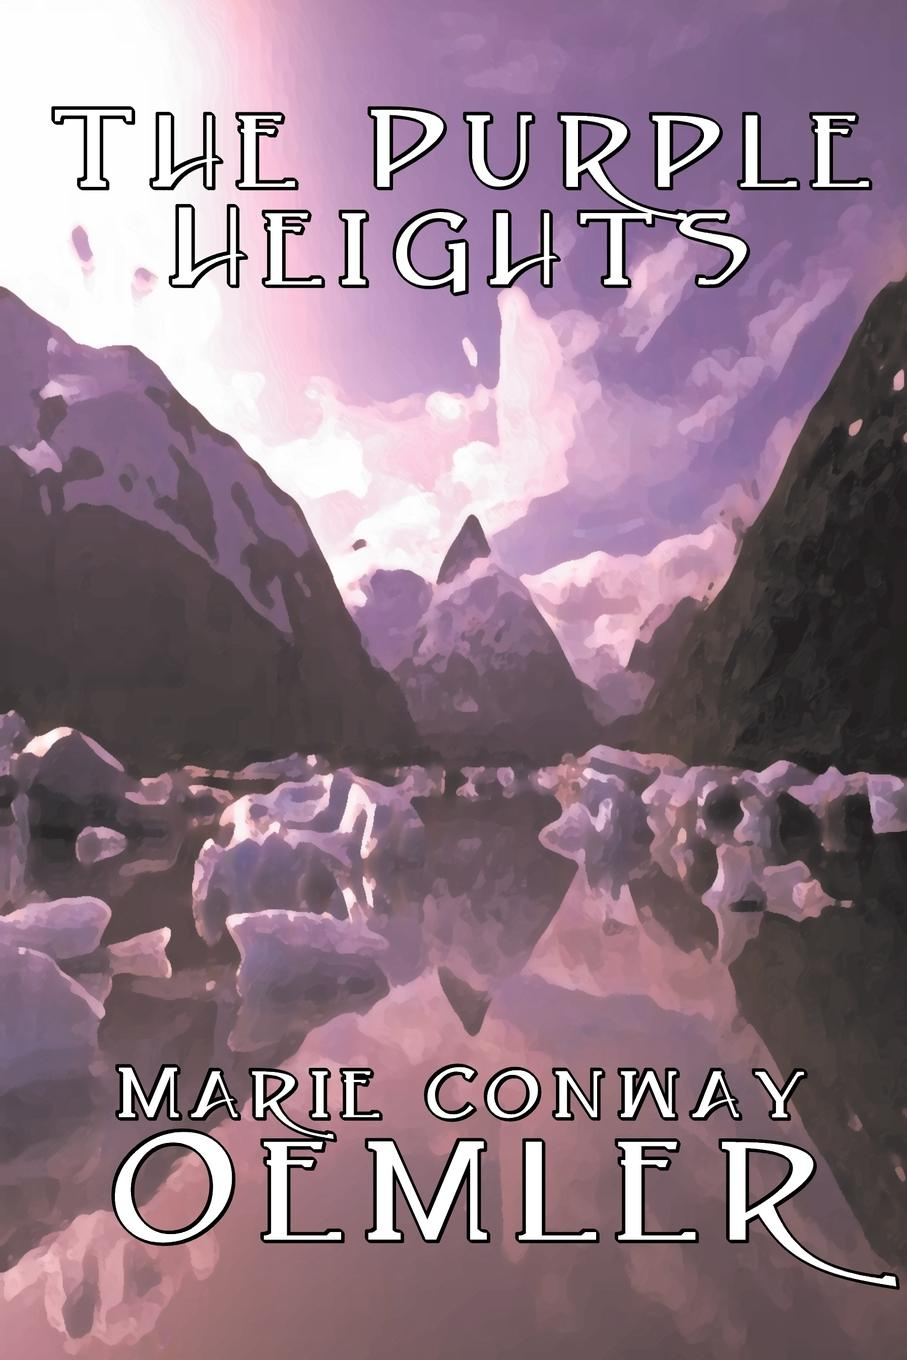 Marie Conway Oemler The Purple Heights by Marie Conway Oemler, Fiction, Romance, Historical, Literary